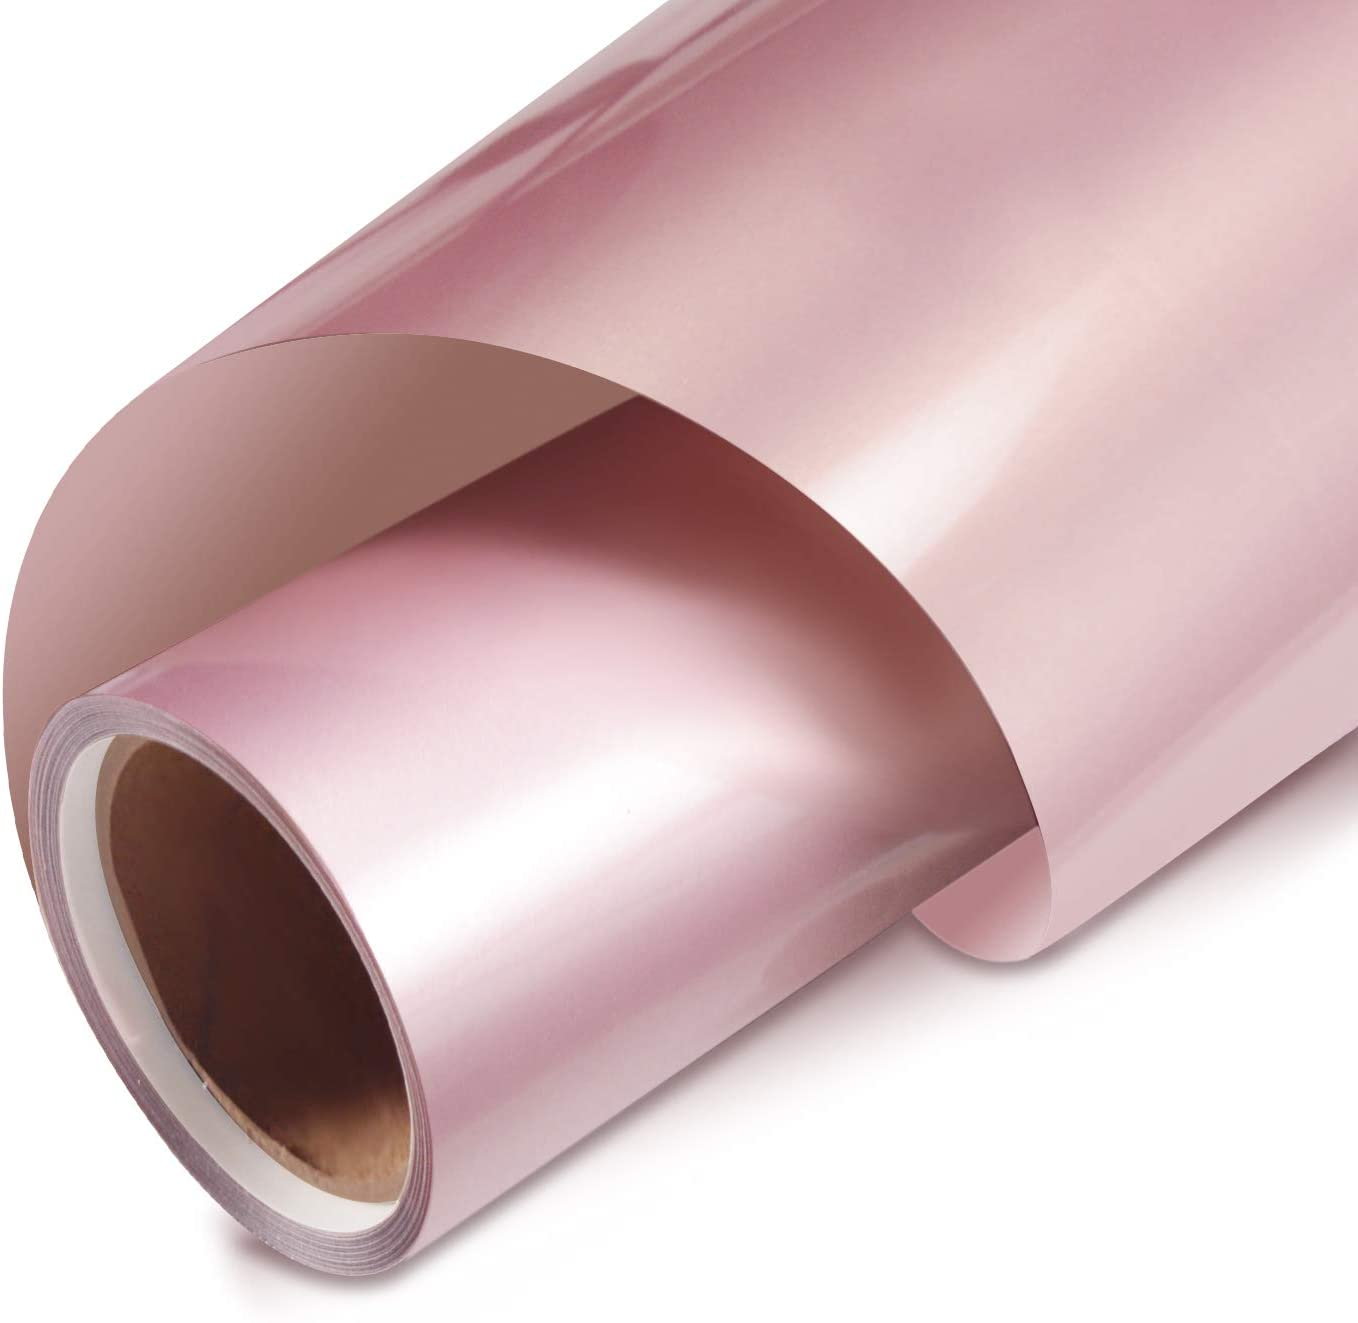 Rose Gold Vinyl Heat Transfer Vinyl Iron on HTV Vinyl Roll 12 Inches by 5 FT for T-Shirts,Rose Gold